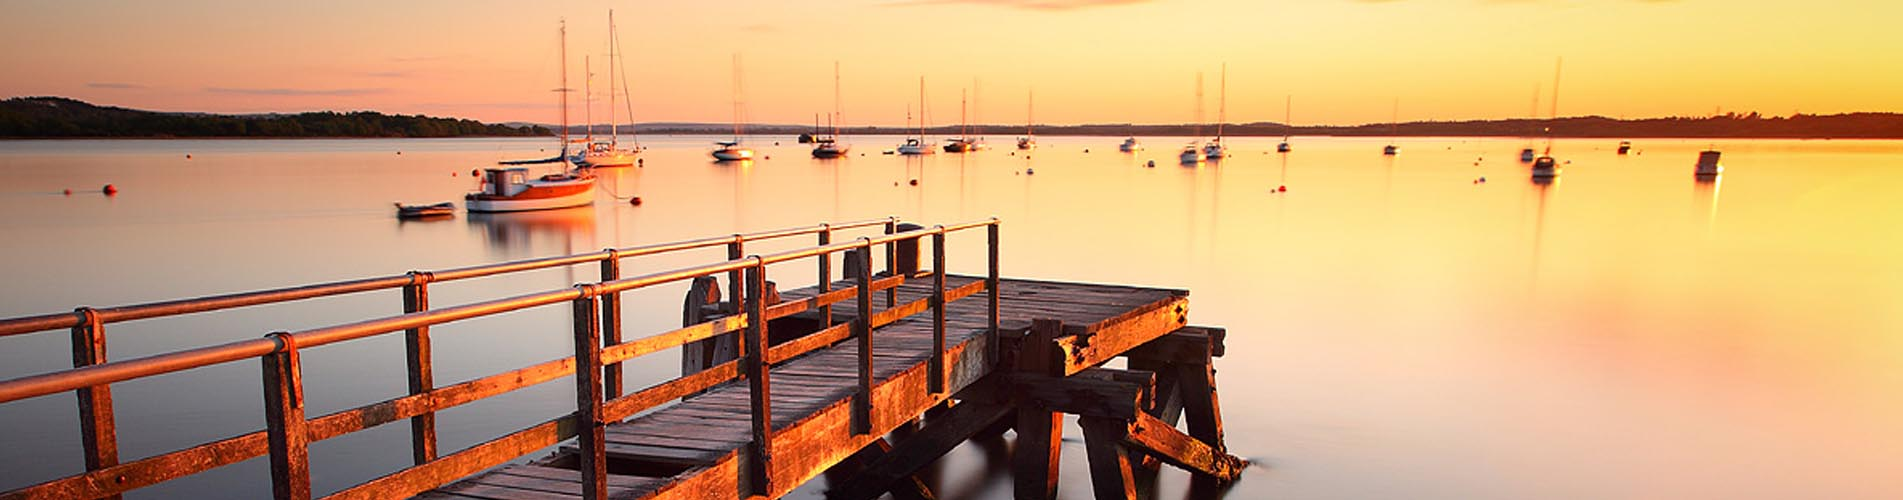 cmp_harbour_sunset